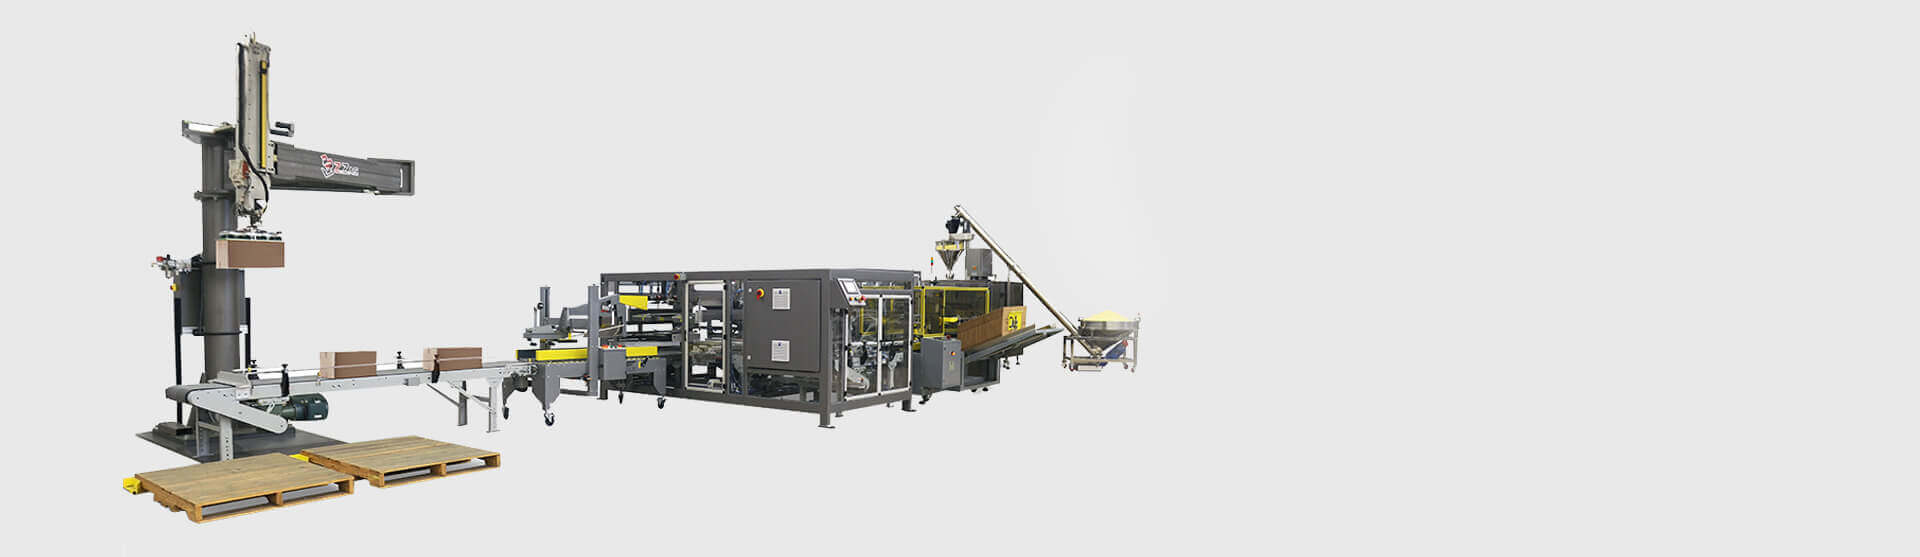 The Paxiom Group automated packaging machinery solution provider